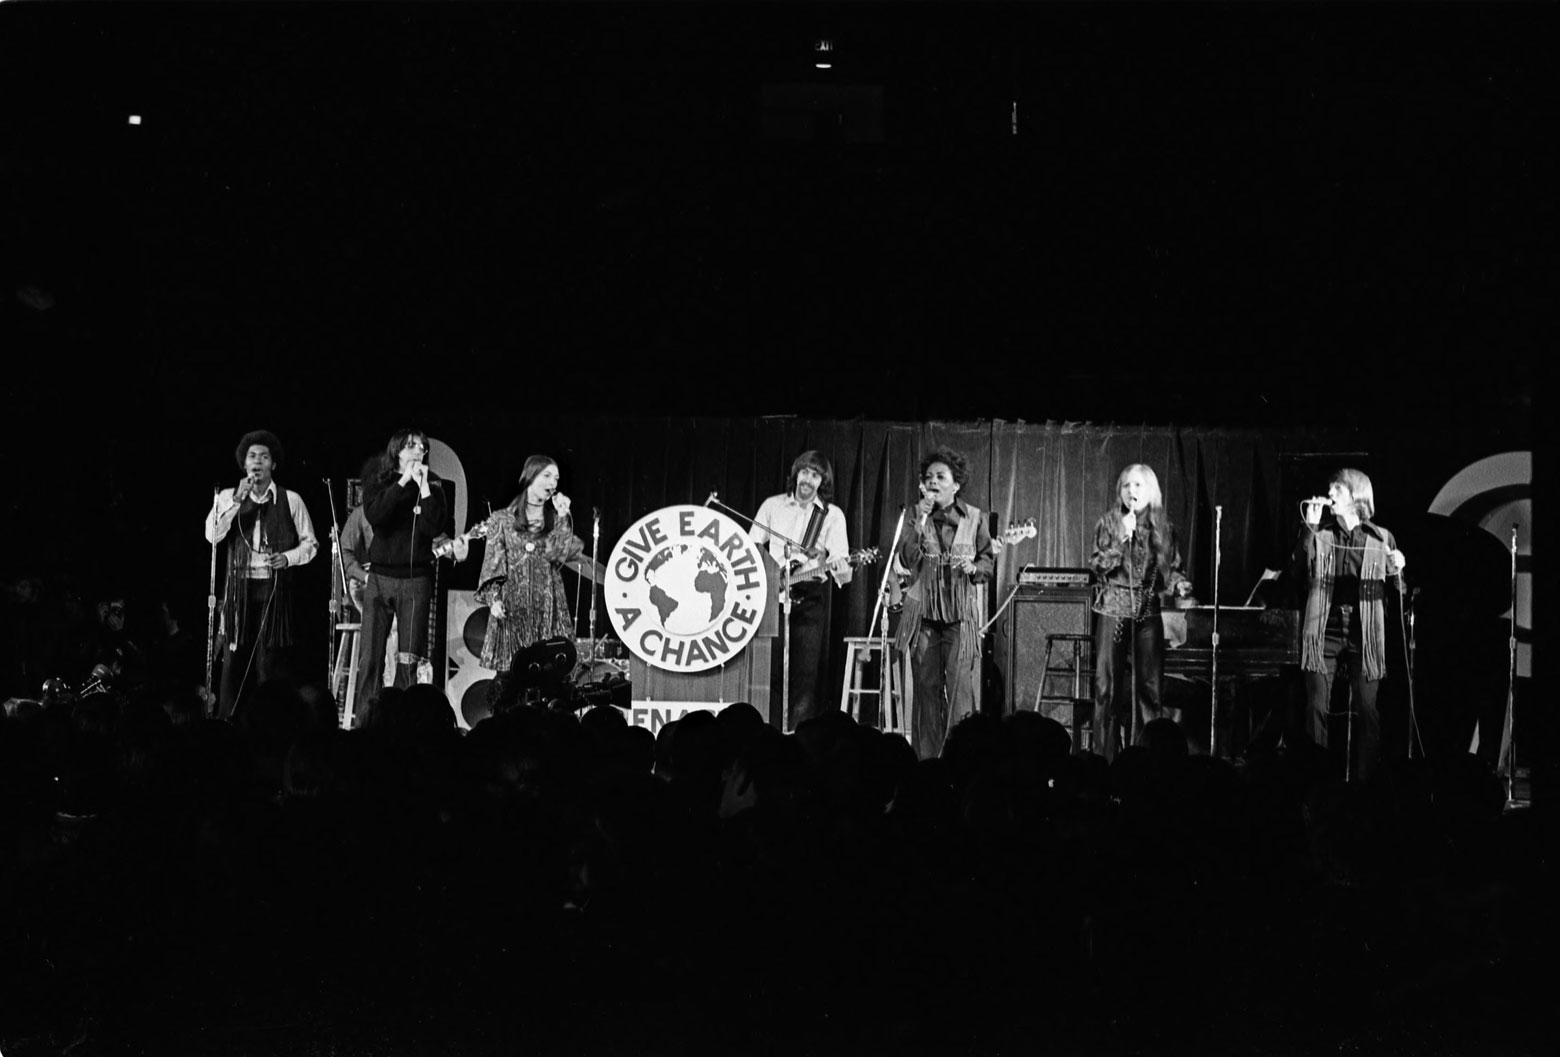 black and white photo of people standing on stage